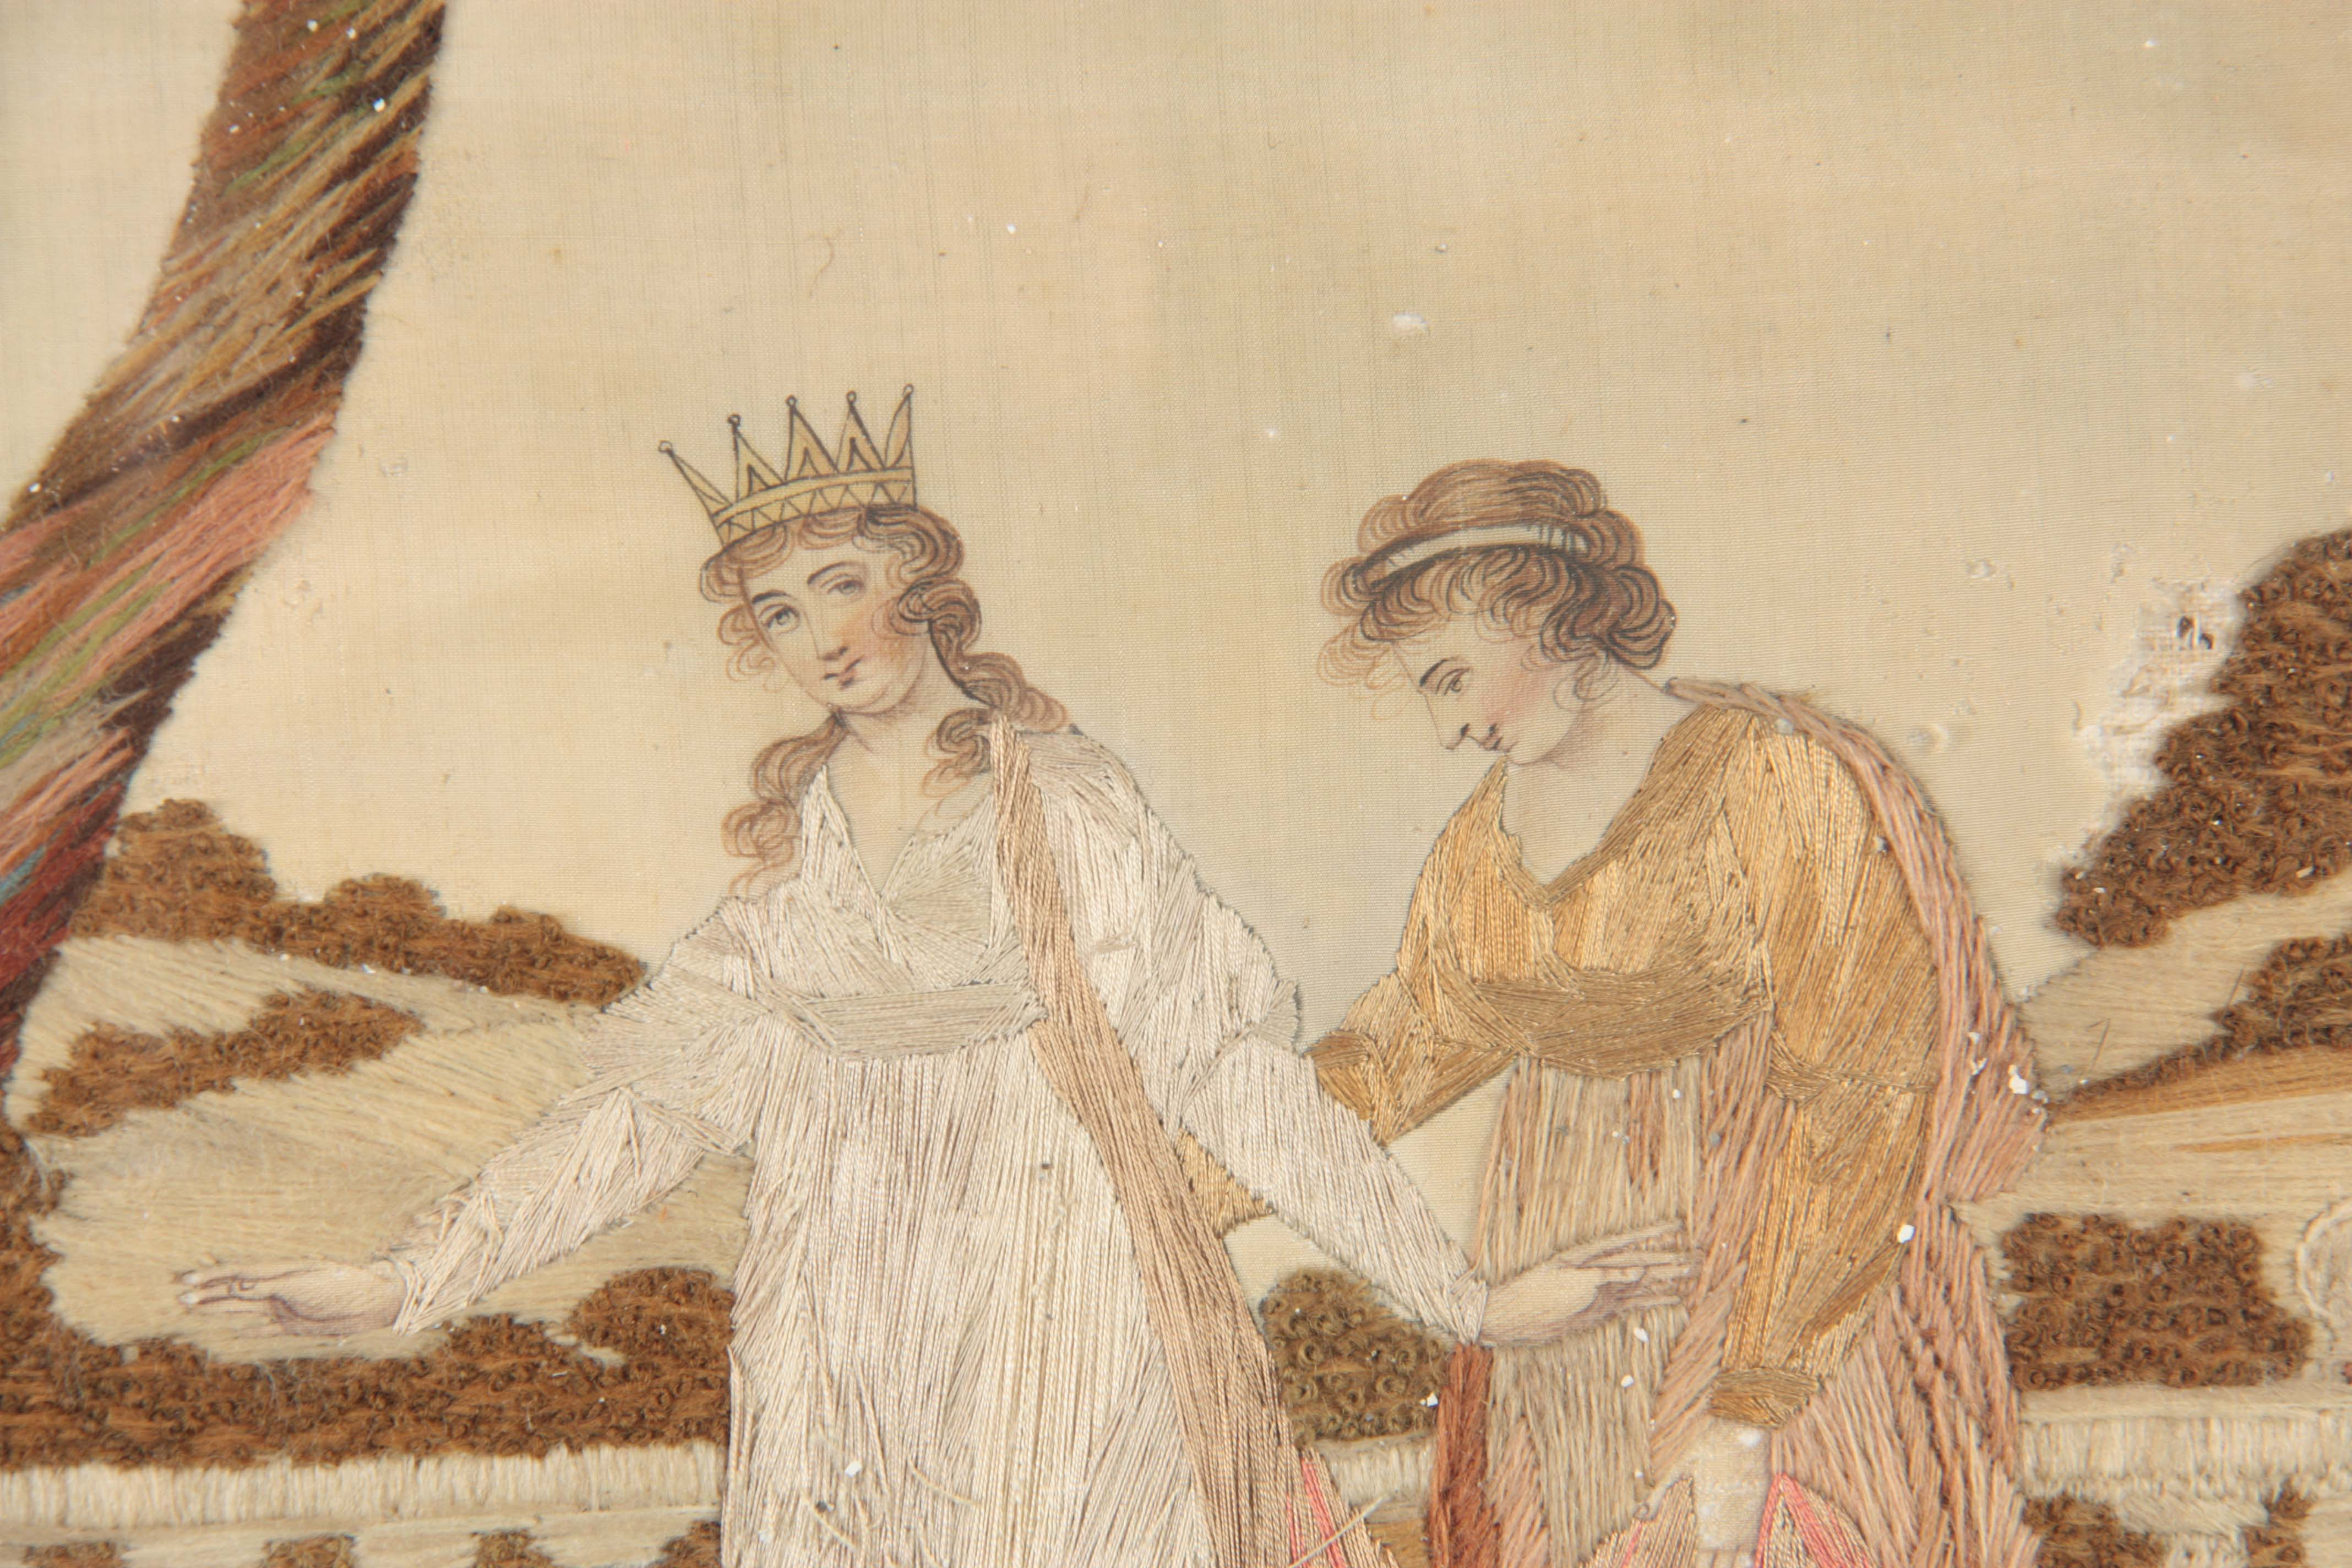 Lot 641 - A GEORGE III OVAL SILK GROUND NEEDLEWORK PICTURE worked in varies stitches wit figures and a child